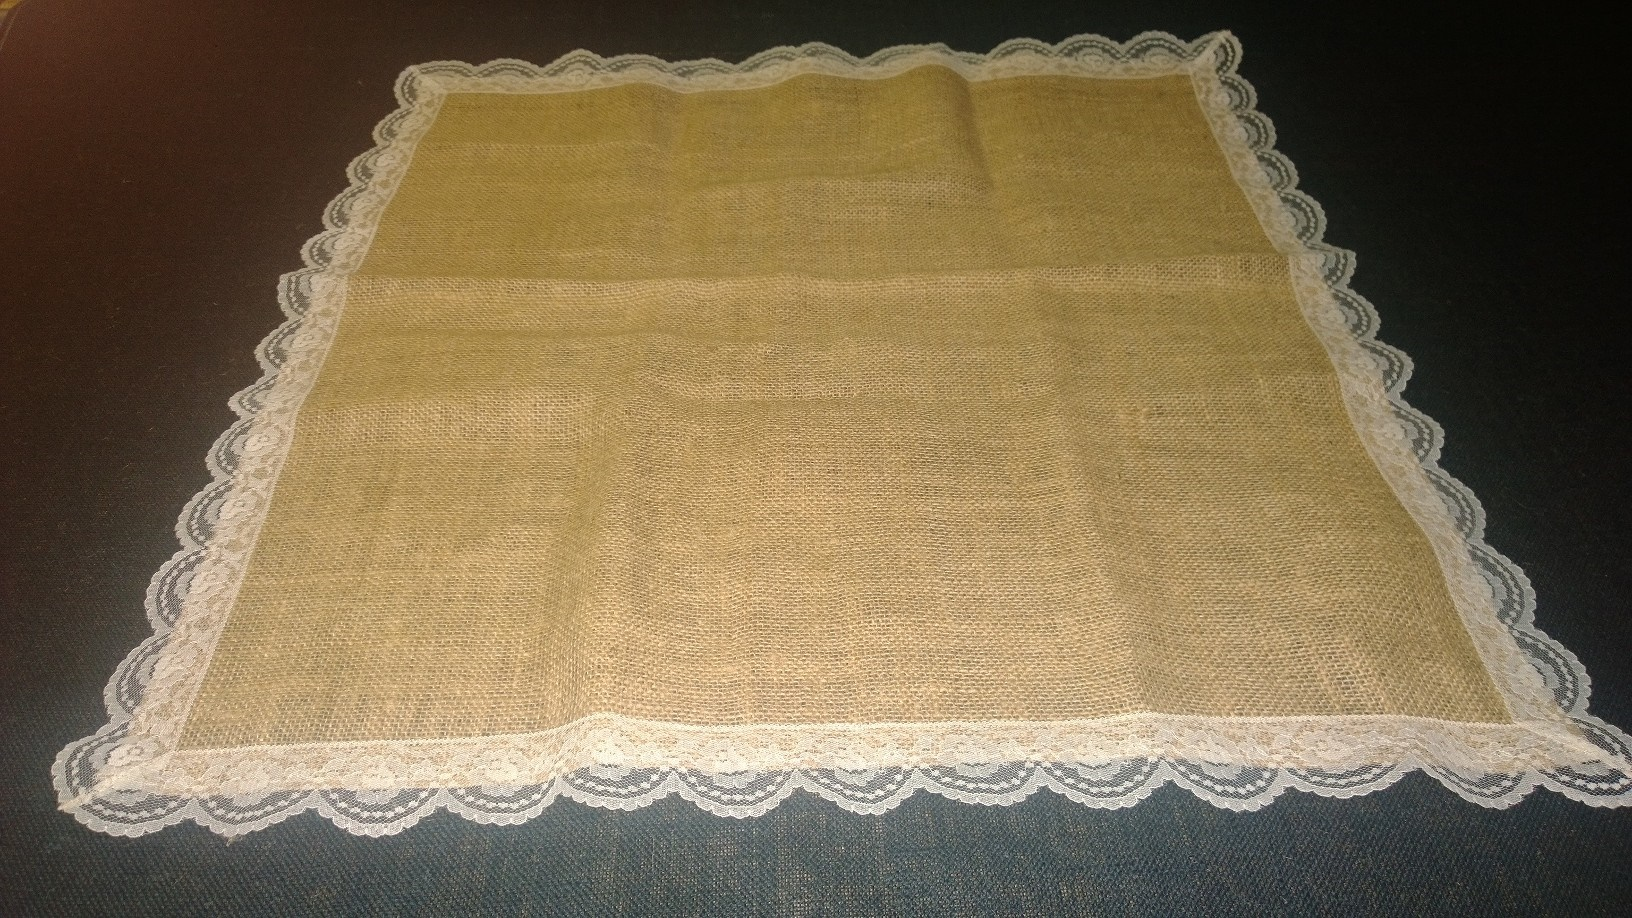 Burlap with Lace Square (ivory lace)